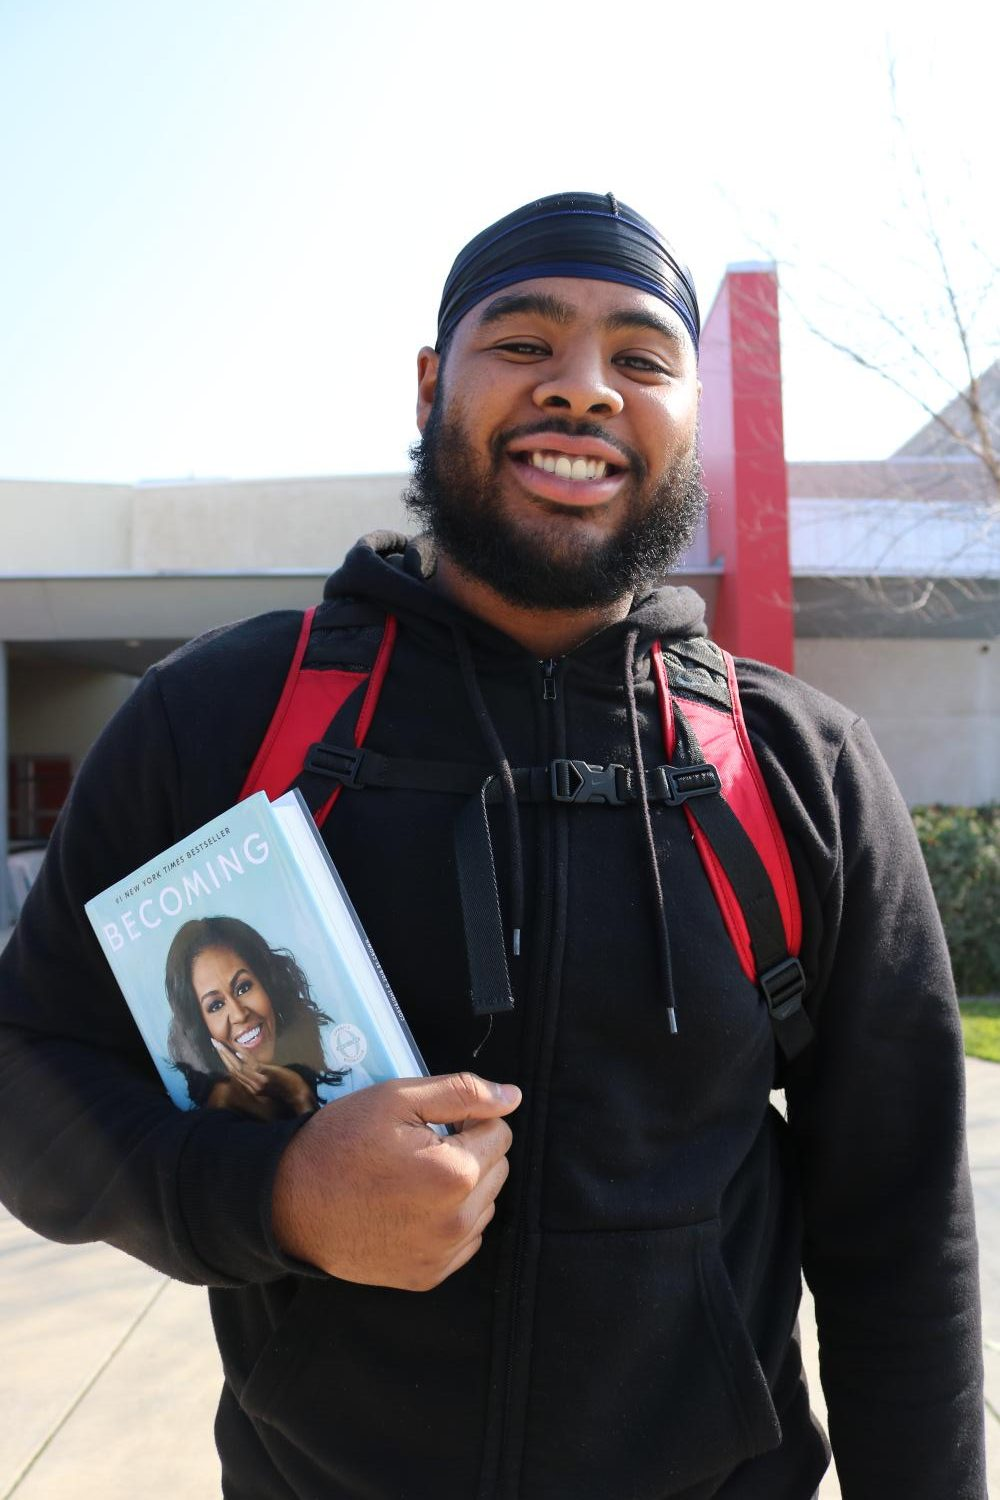 """My pops, I've never met him. I'd talk to him about the super bowl and ask him about sports and let him know that I'm doing big things."" Noah Keys 